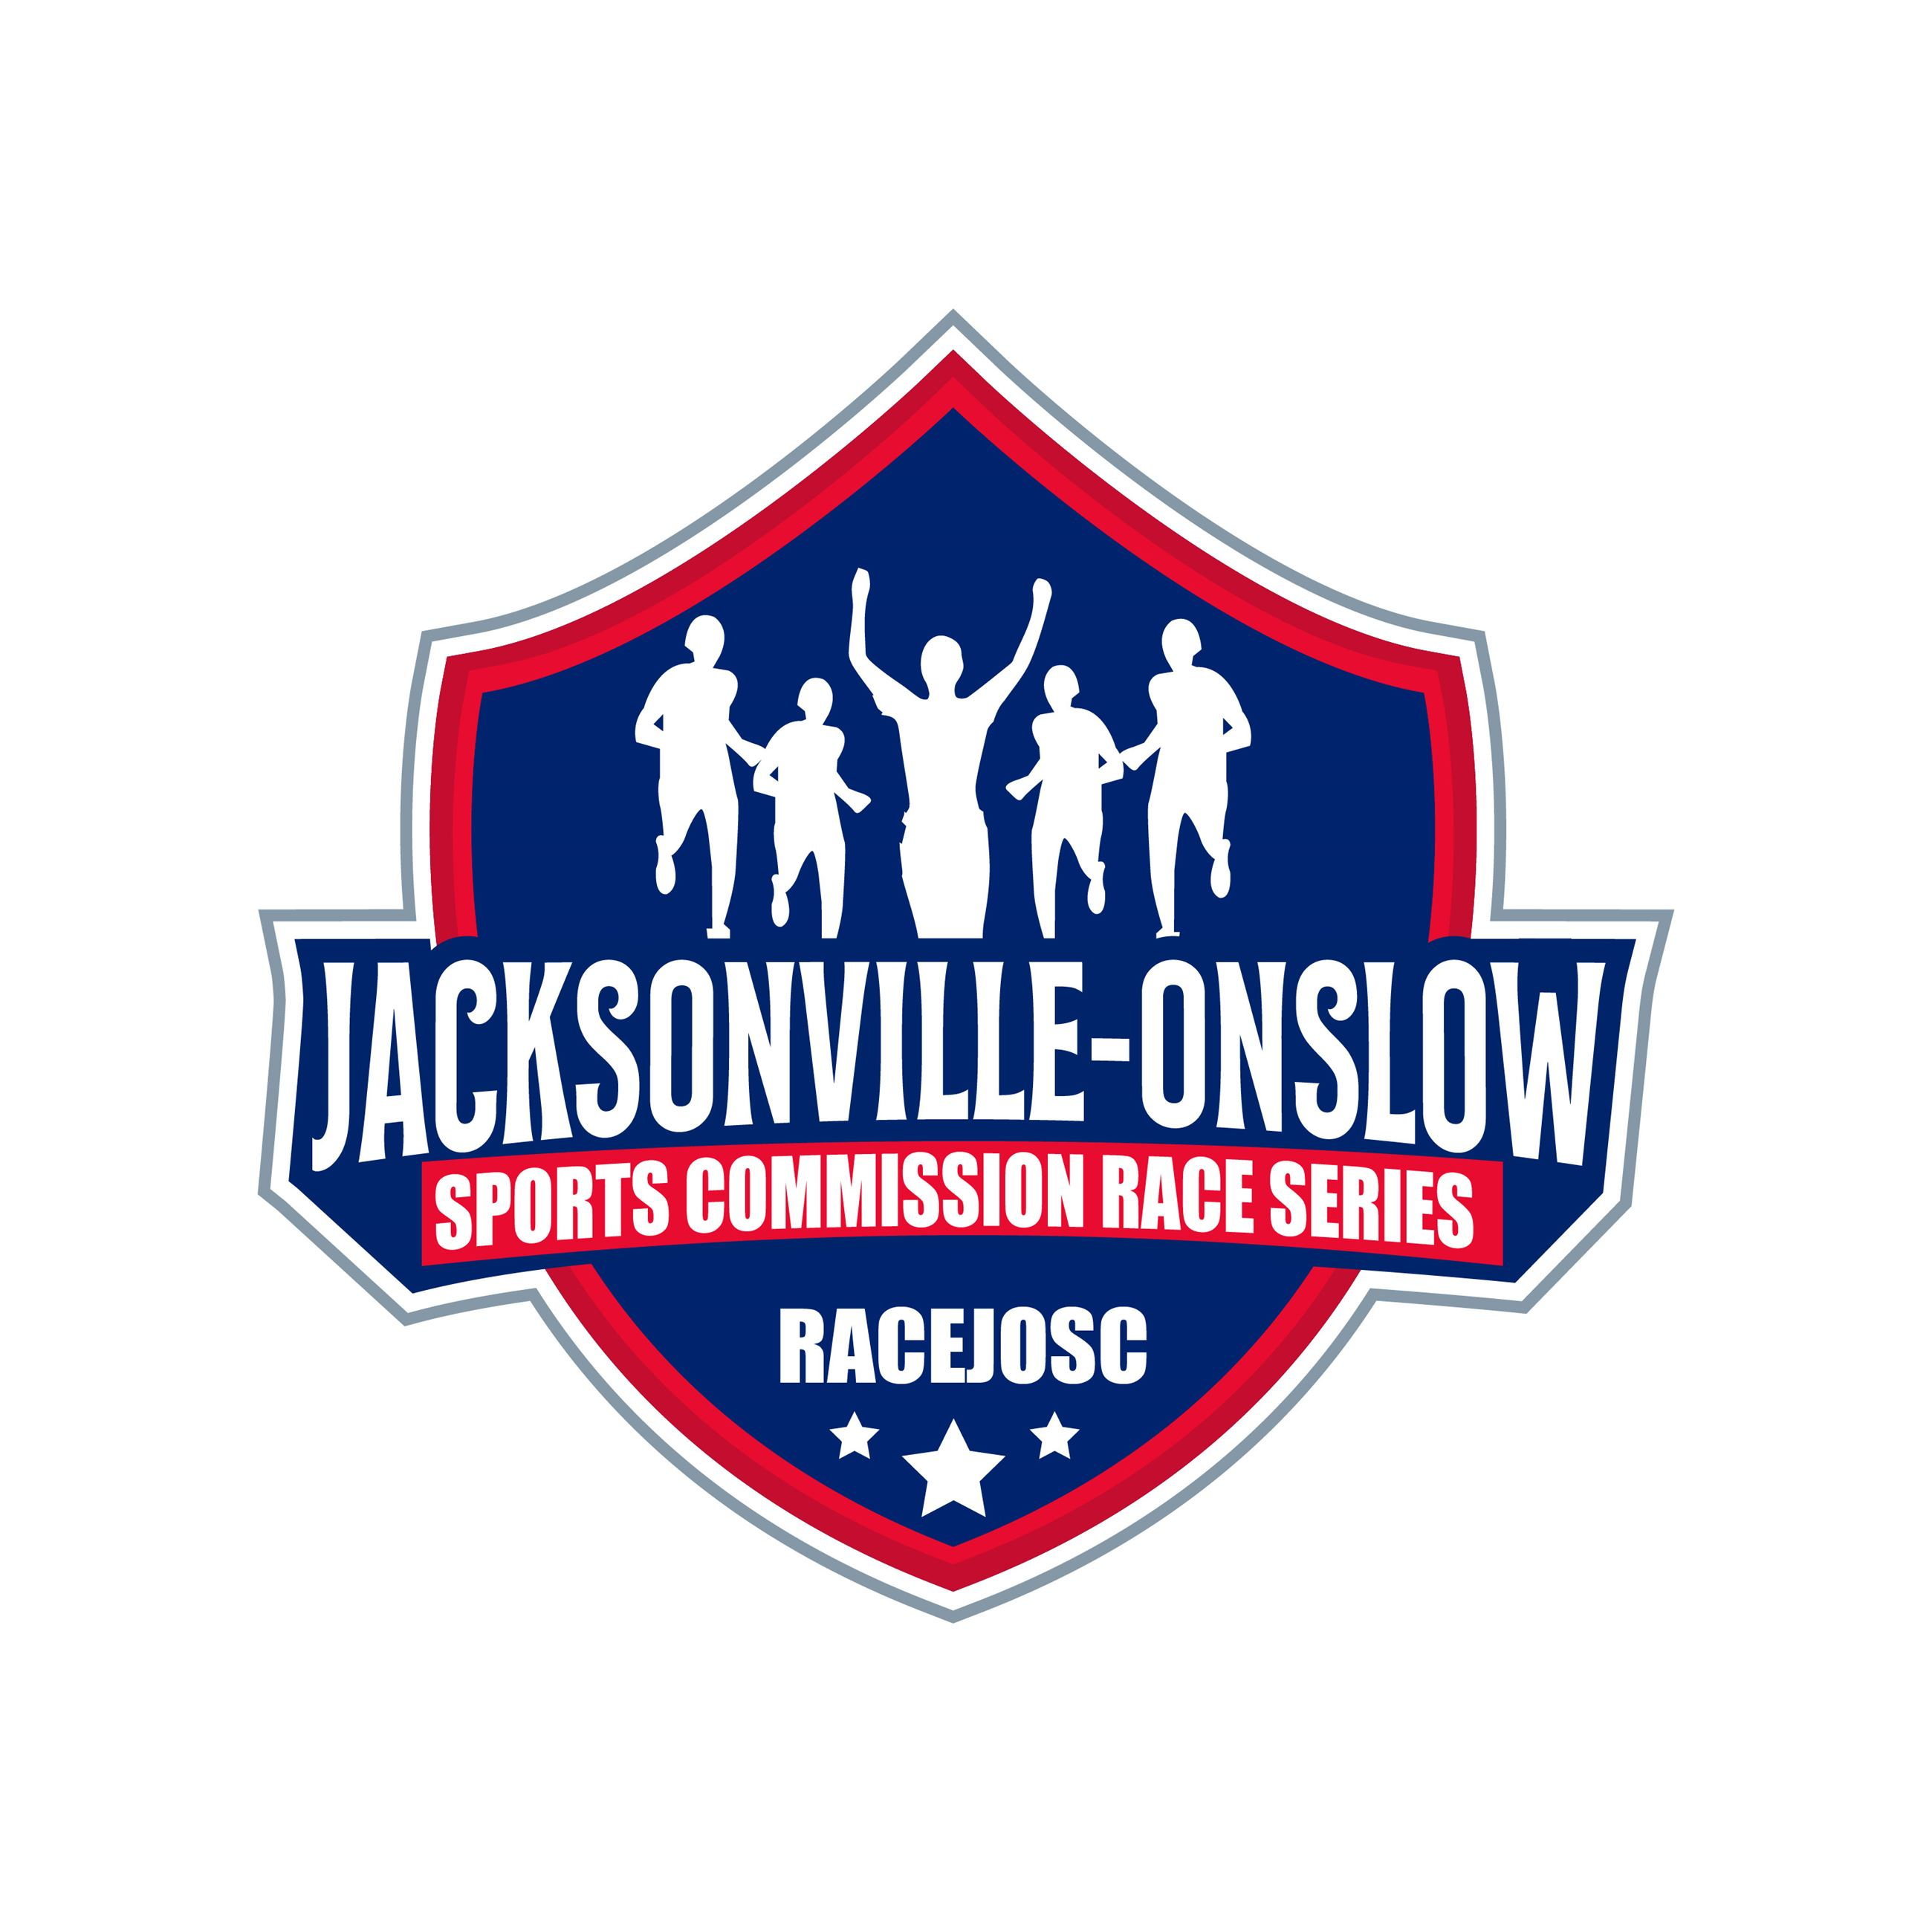 Jacksonville Onslow Sports Commission - Race Series logo